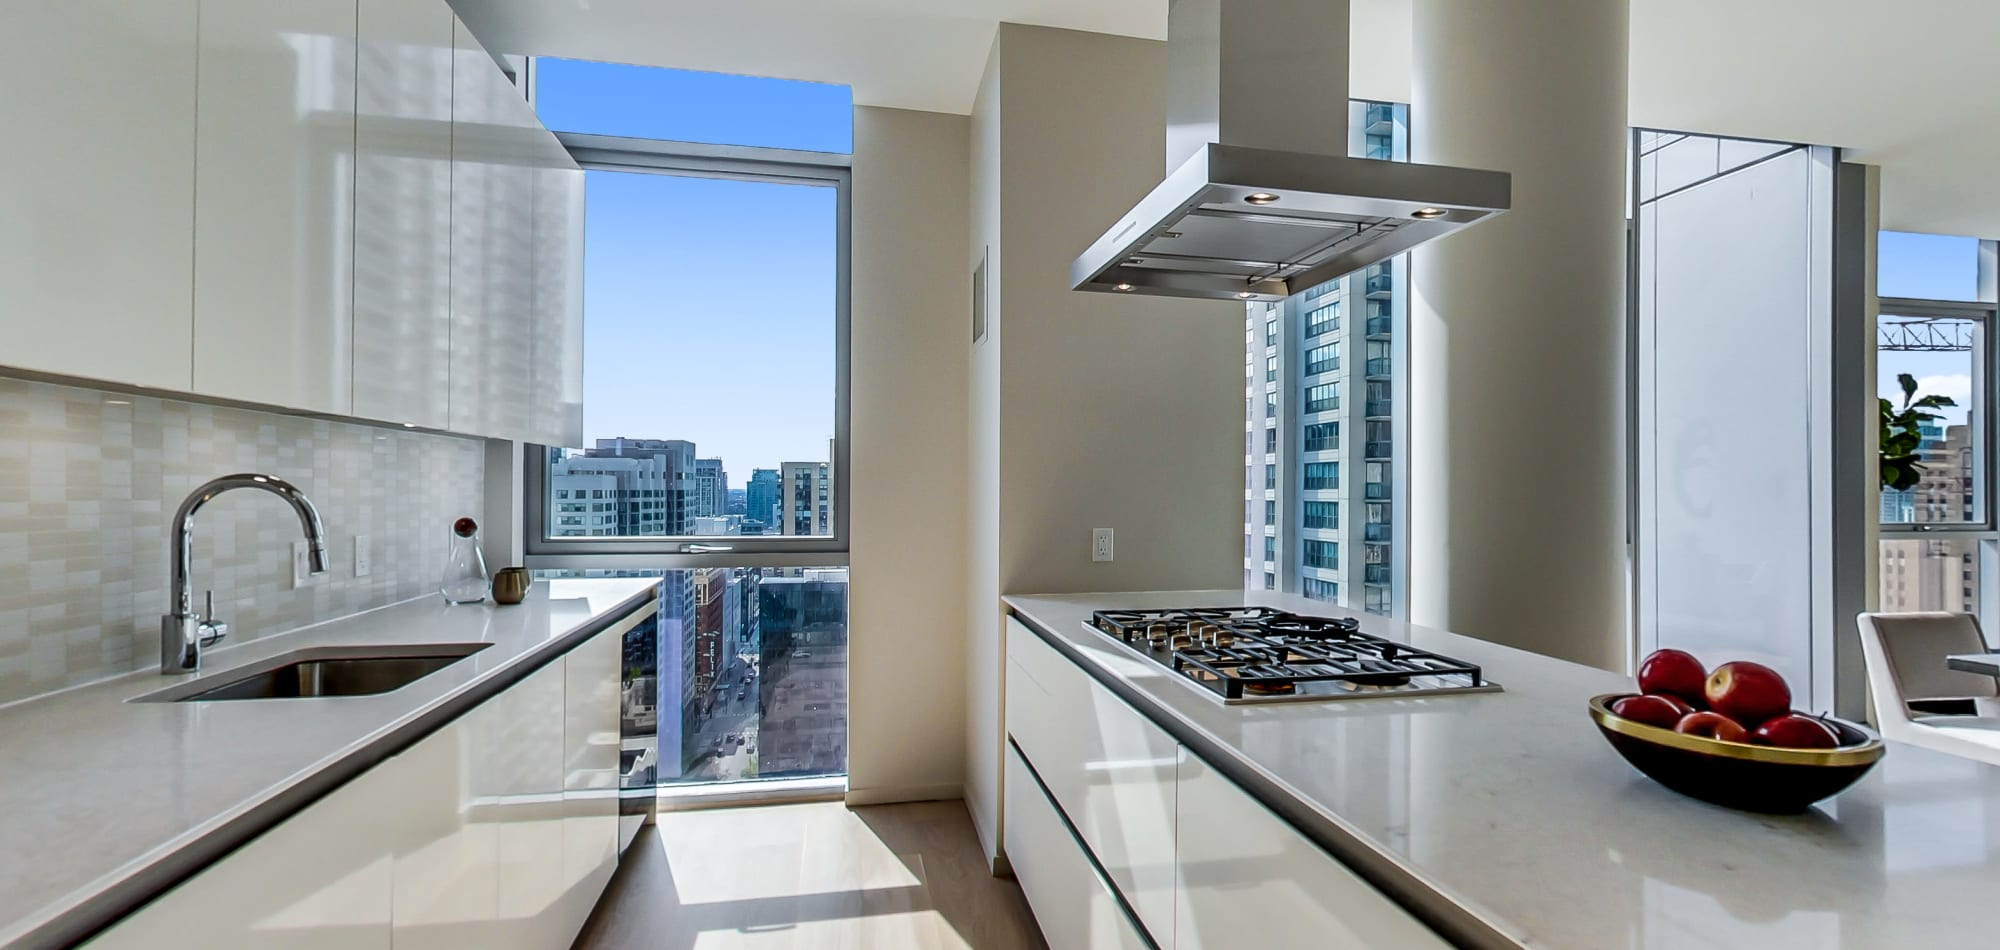 Kitchen at our luxury apartments at Residences at 8 East Huron in Chicago, Illinois